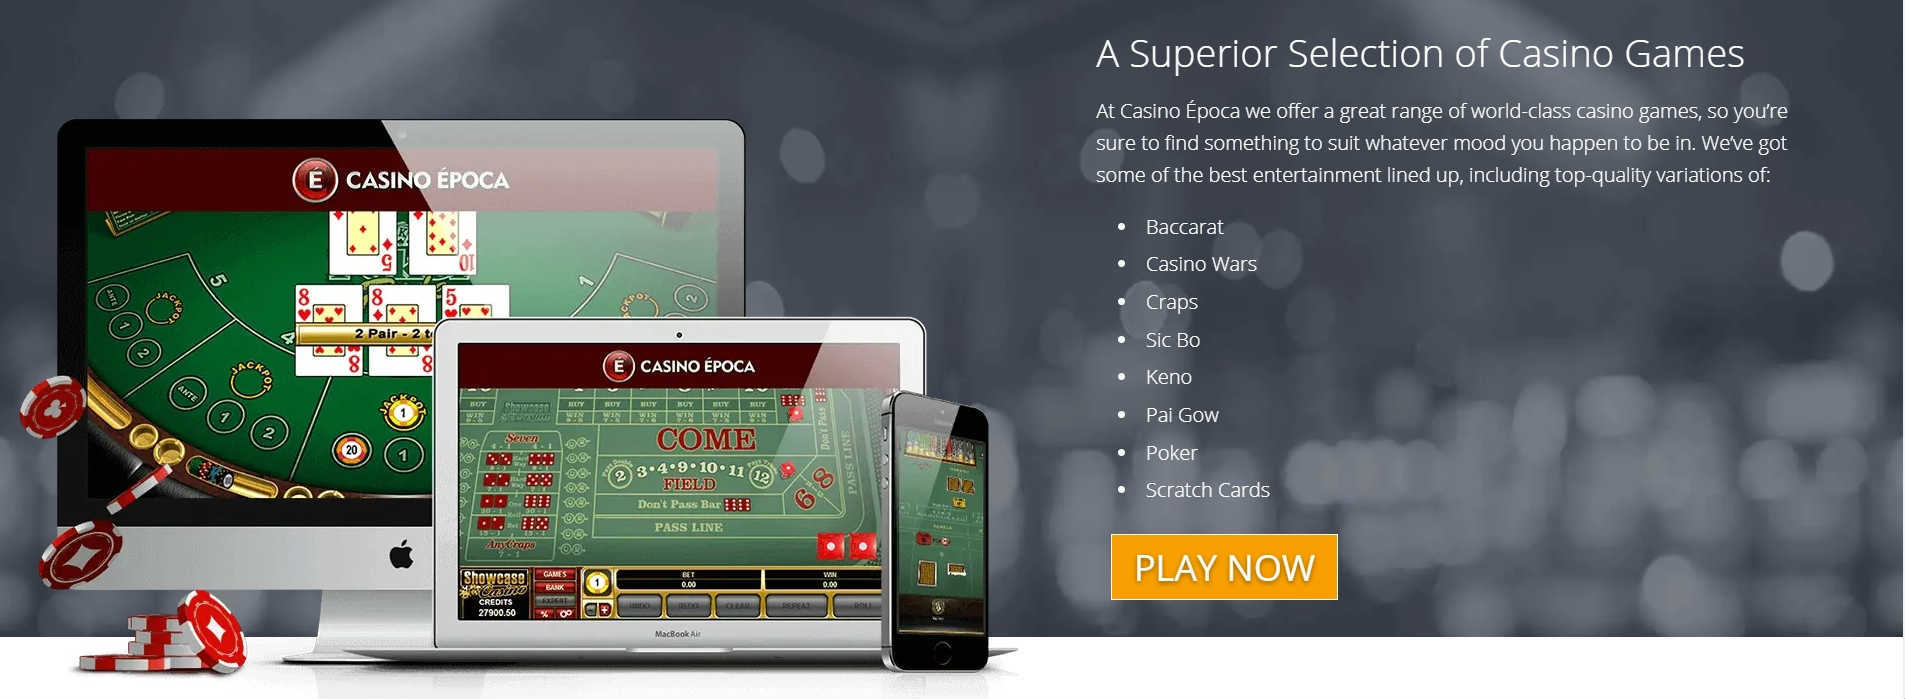 Casino Epcoa Online Casino Games